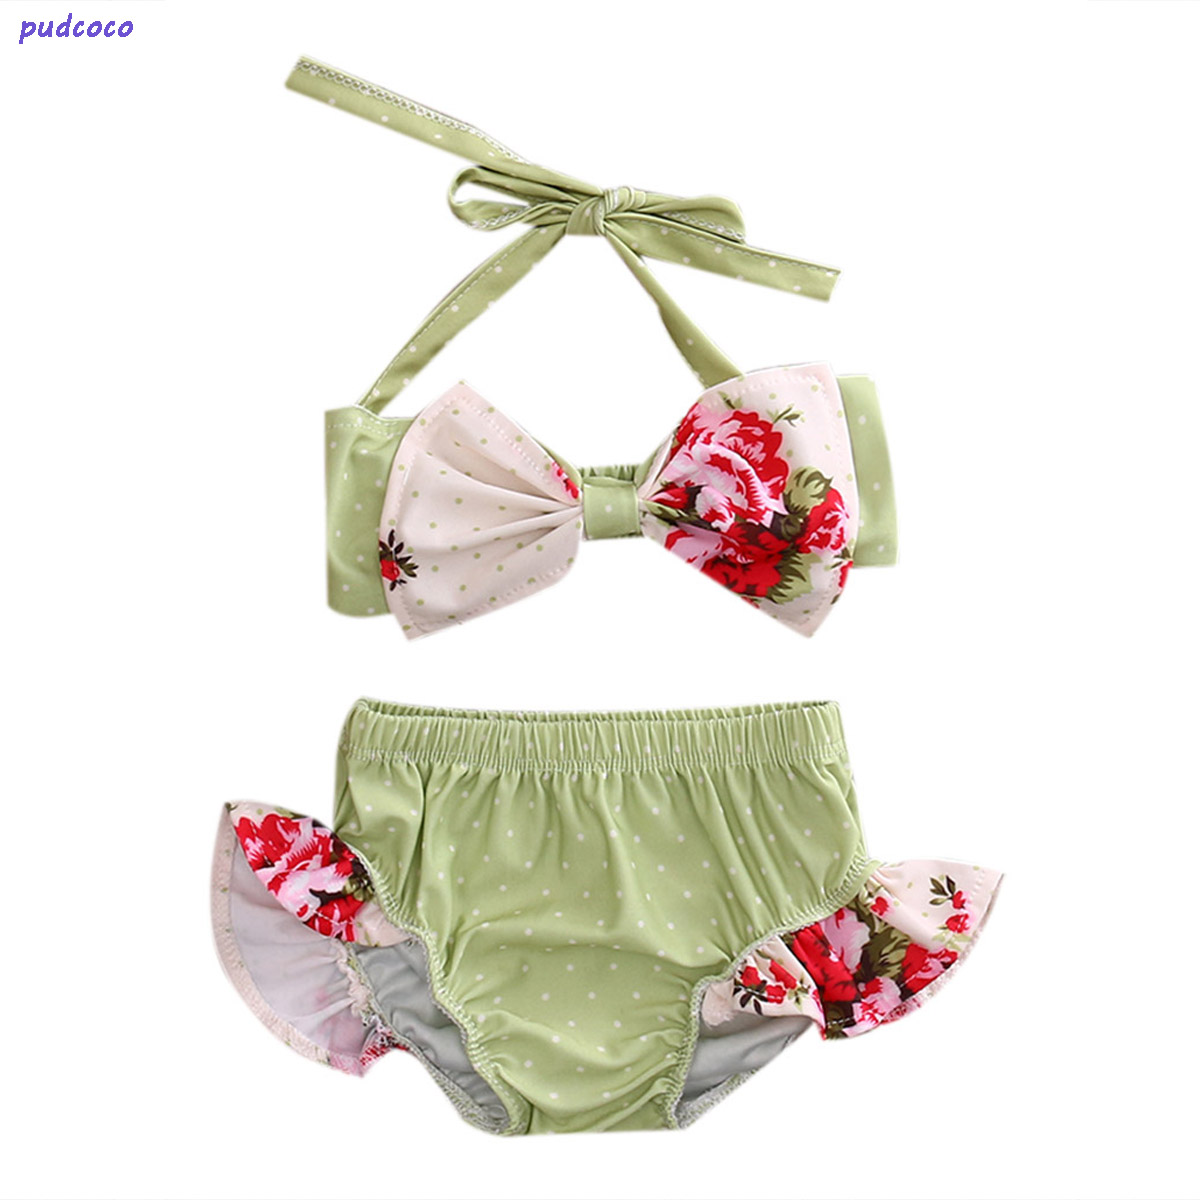 Reasonable Pudcoco 2019 Brand Summer Kids Baby Girl Bikini Suit Bowknot Flamingo Swimwear Beachwear Swimming 1-6y Swimwear